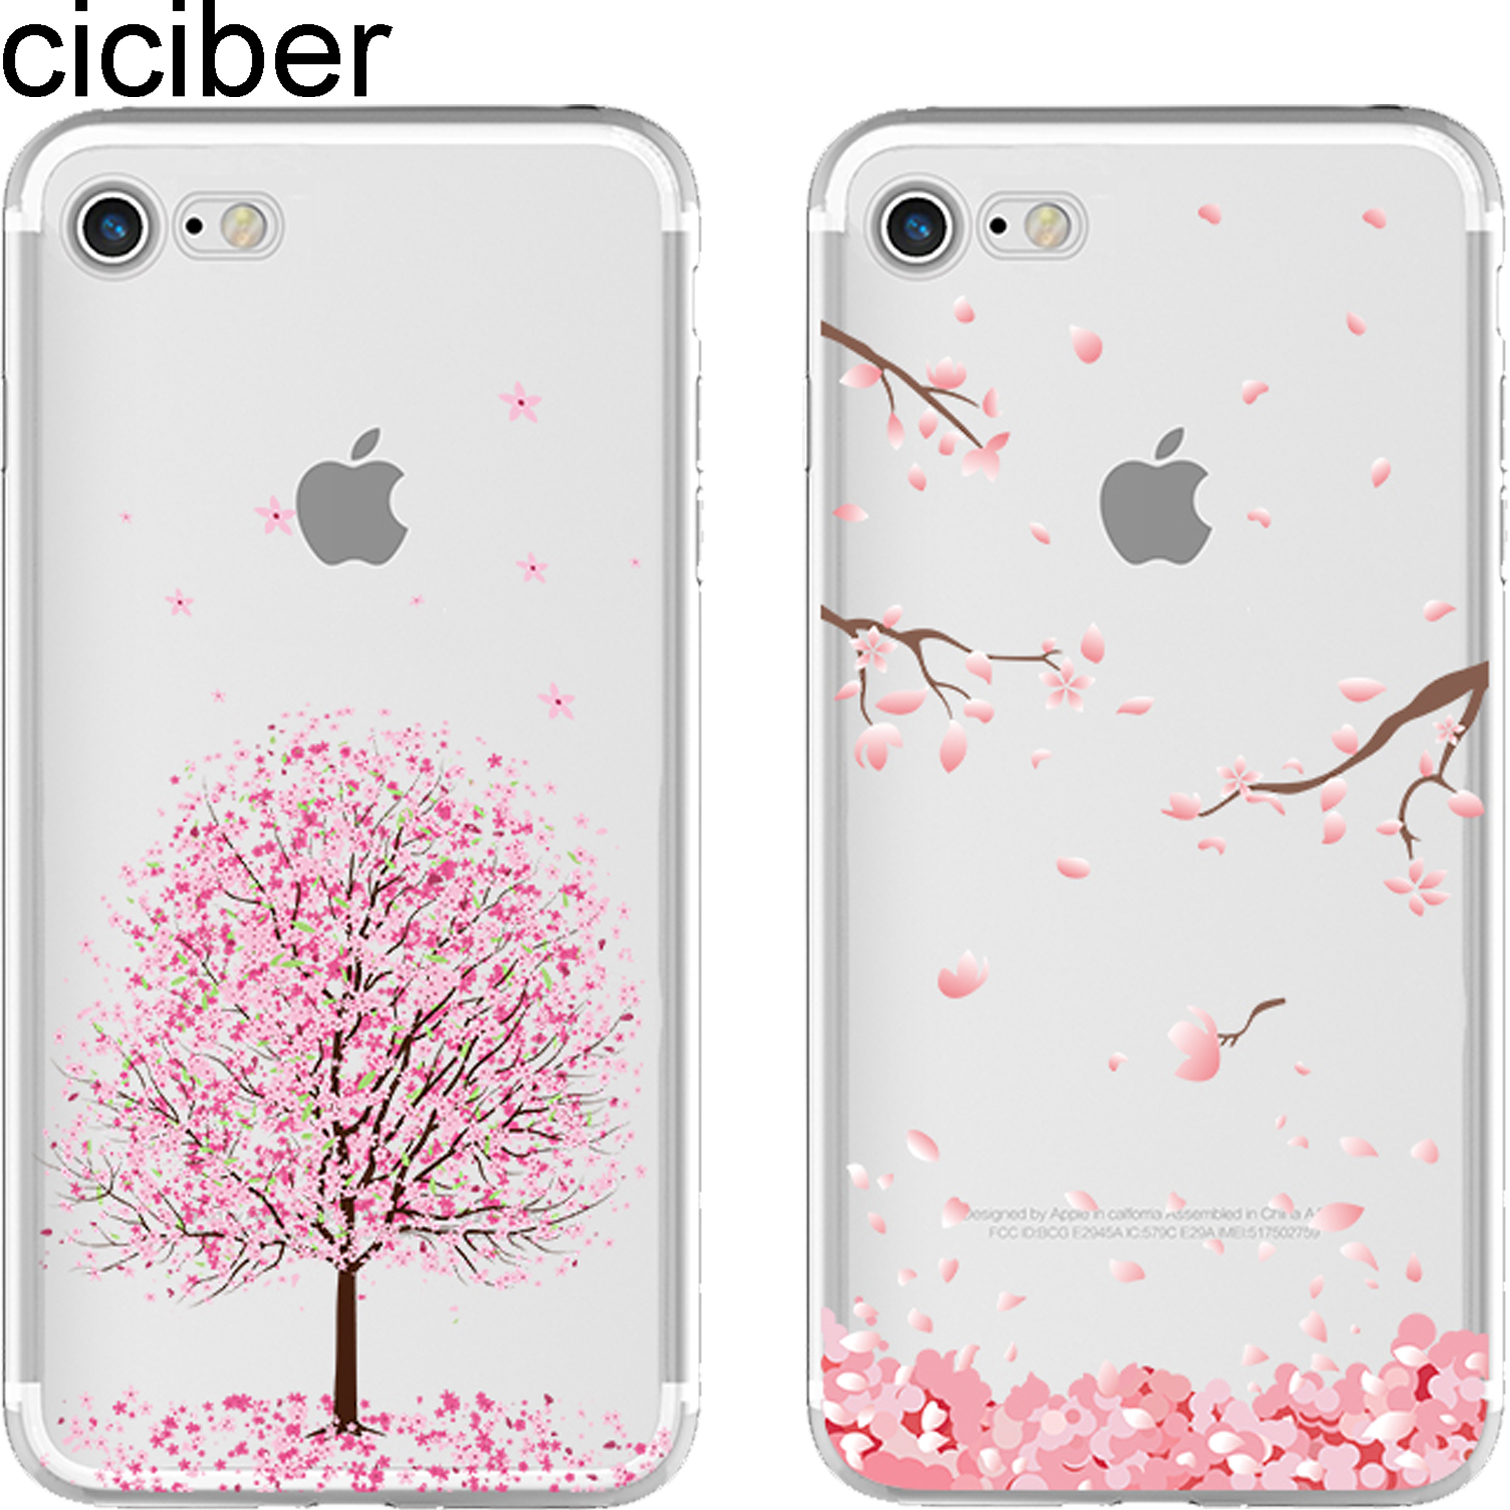 ciciber Romantic Cherry Blossom Cat Soft TPU موارد پوشش تلفن IPhone 11 Pro Max 6 6S 7 8 Plus 5S SE X XR XS Max Funda